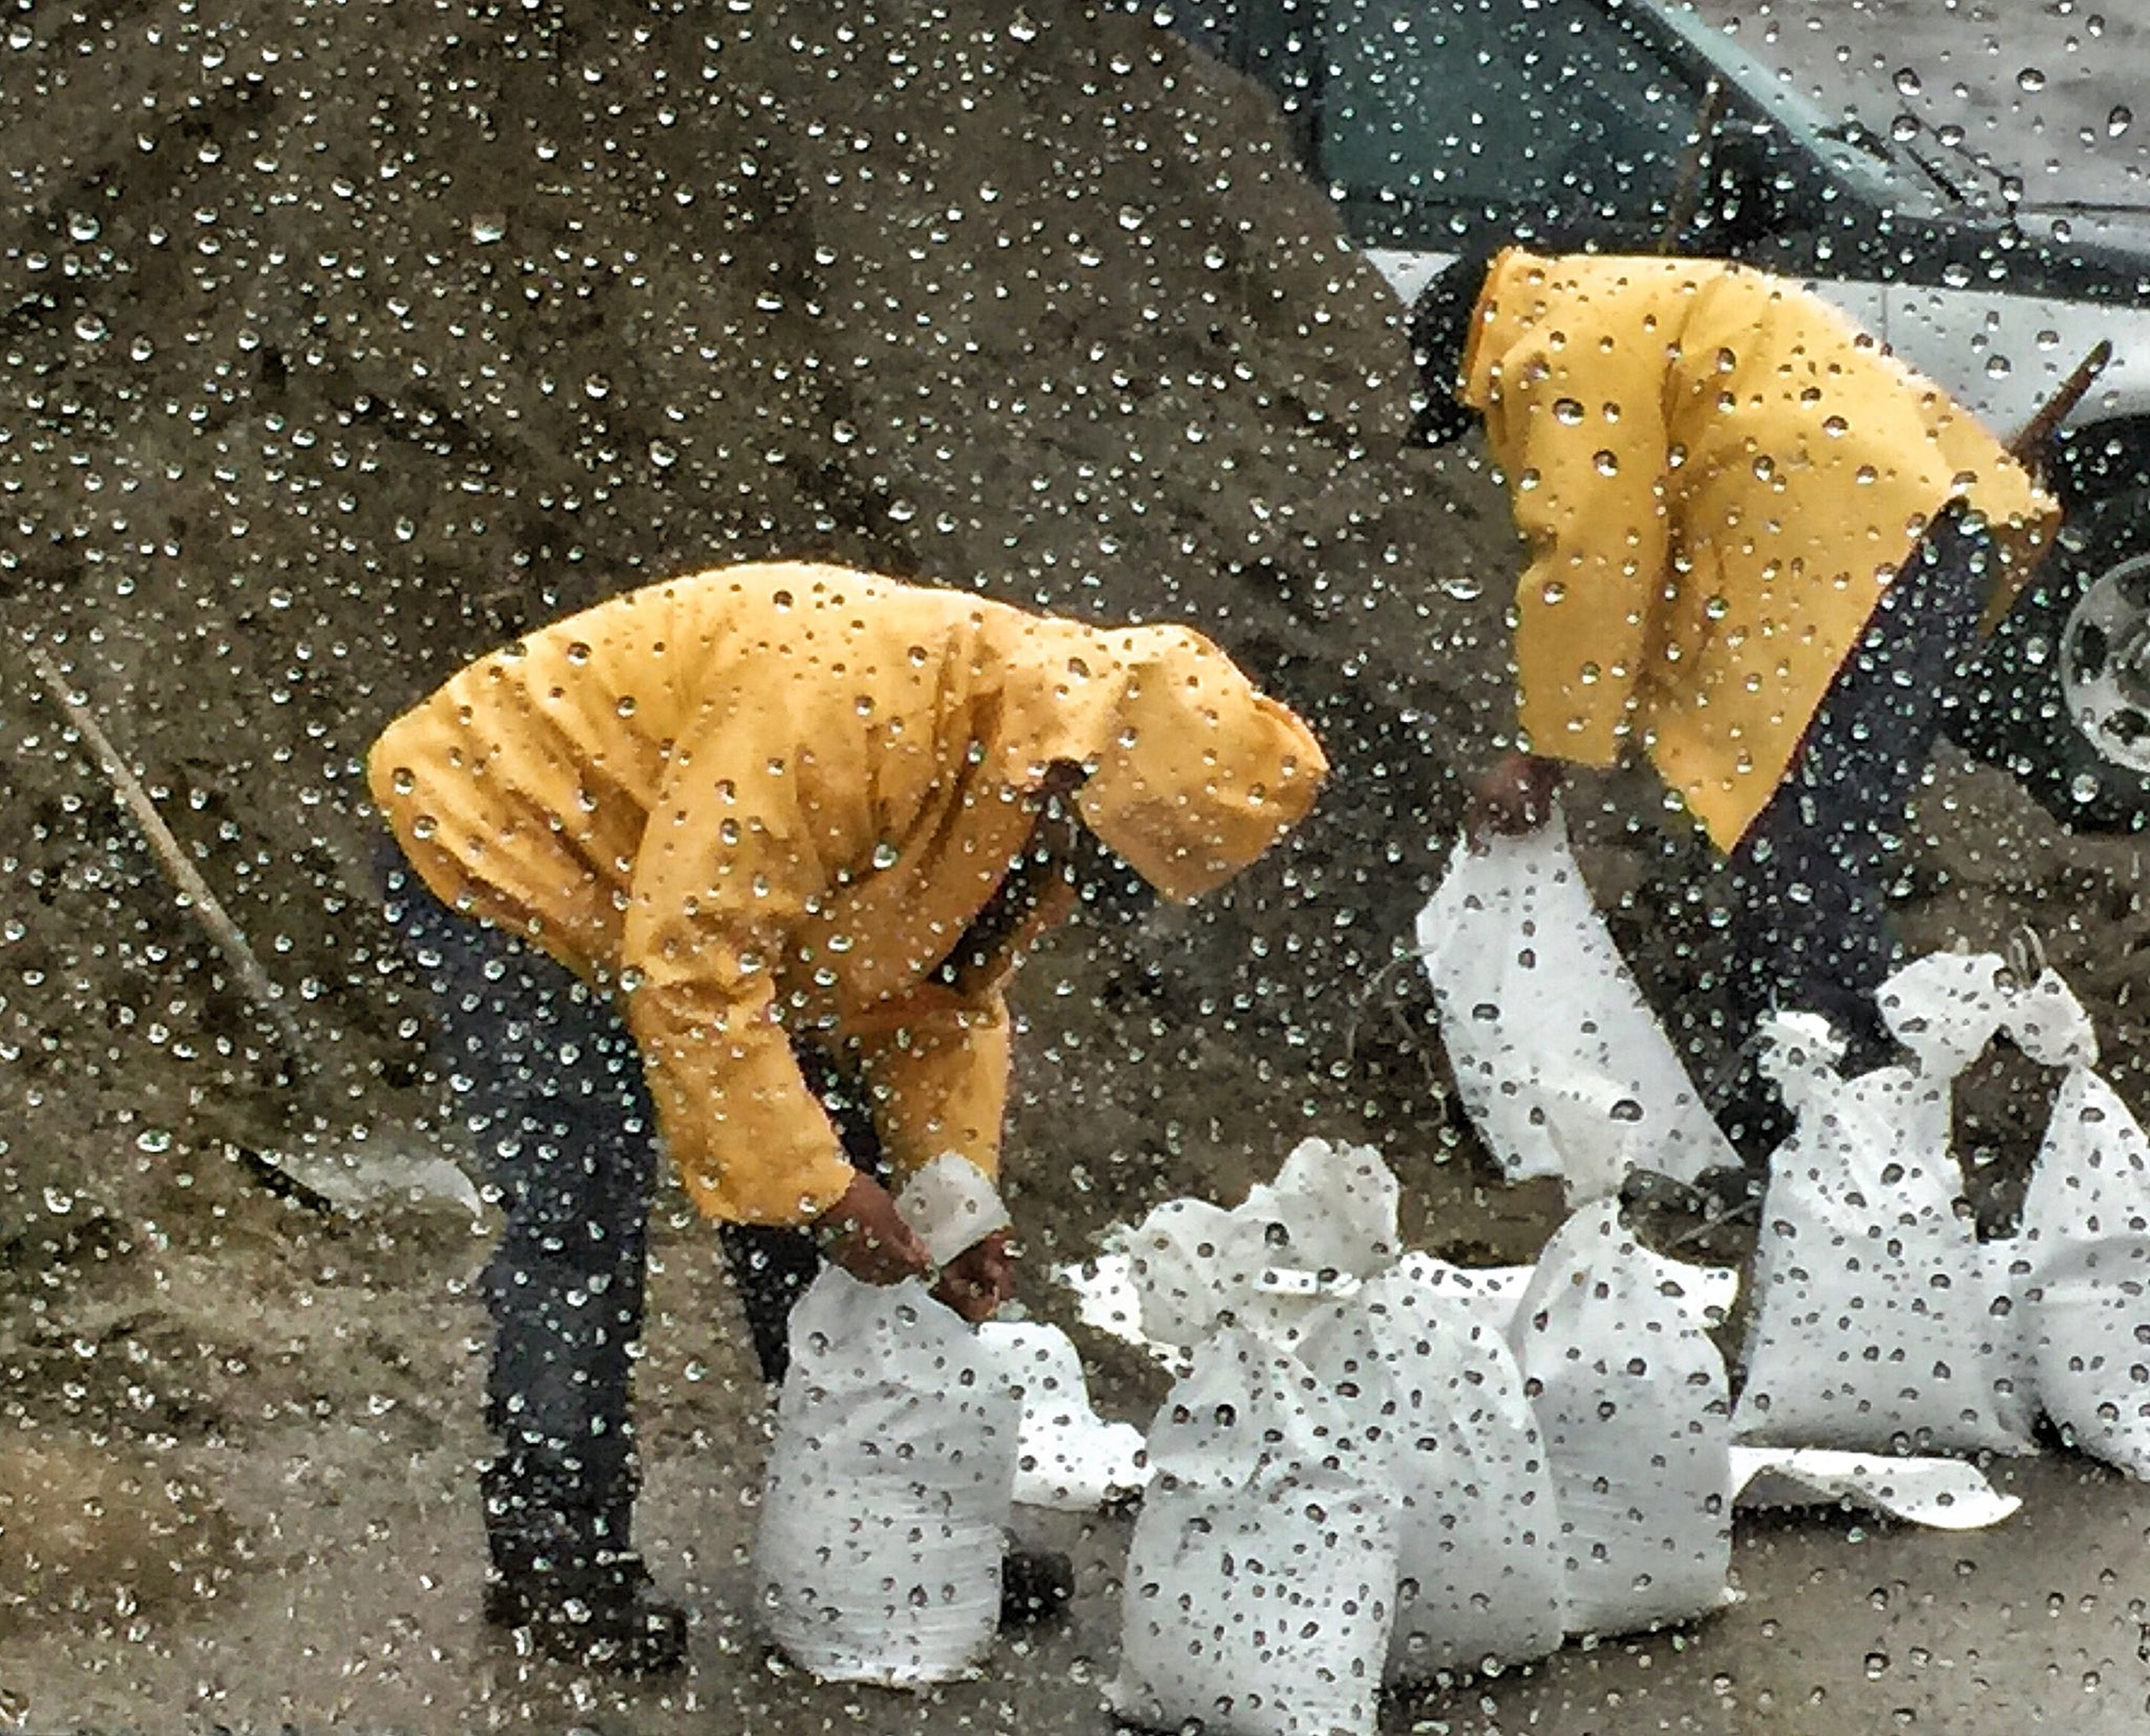 In this photo taken through a glass window, released by Santa Barbara County Fire Department, people fill up sandbags under the rain in Santa Barbara, Calif., Monday, Jan. 8, 2018. Storms brought rain to California on Monday and increased the risk of mudslides in fire-ravaged communities. (Mike Eliason/Santa Barbara County Fire Department via AP)